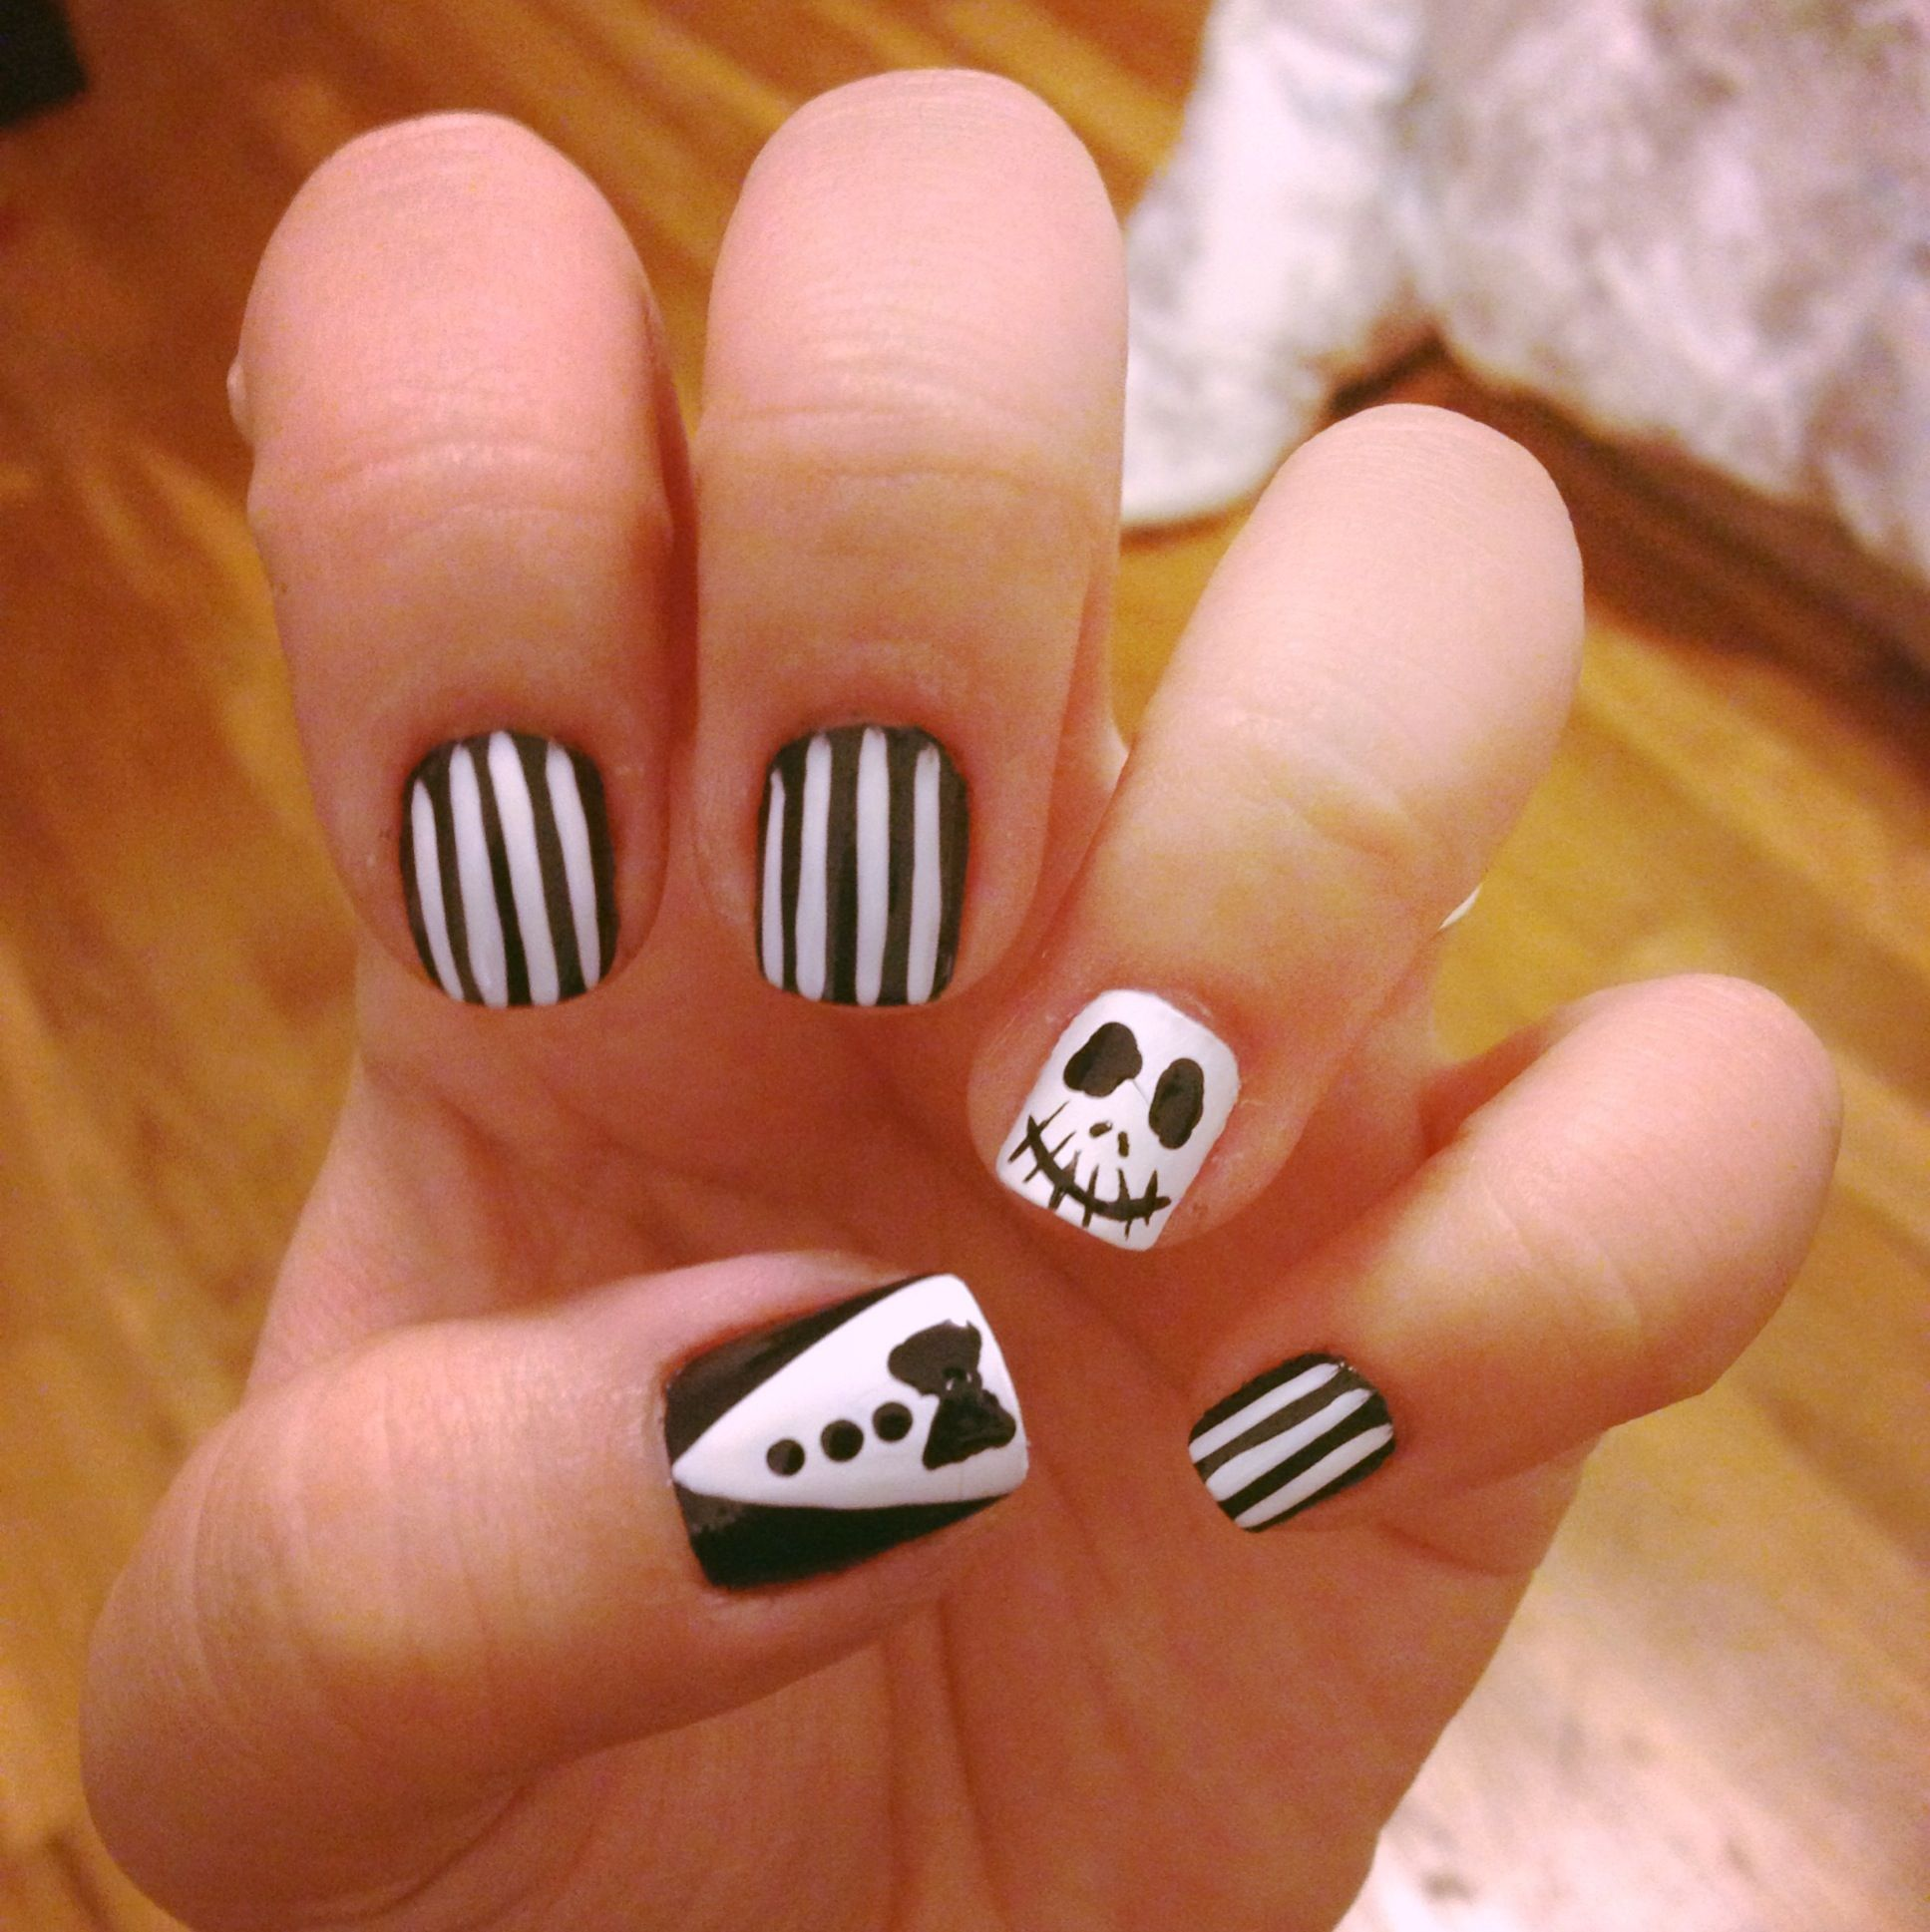 Jack Skellington nail art #simplychitah | Nail designs | Pinterest ...